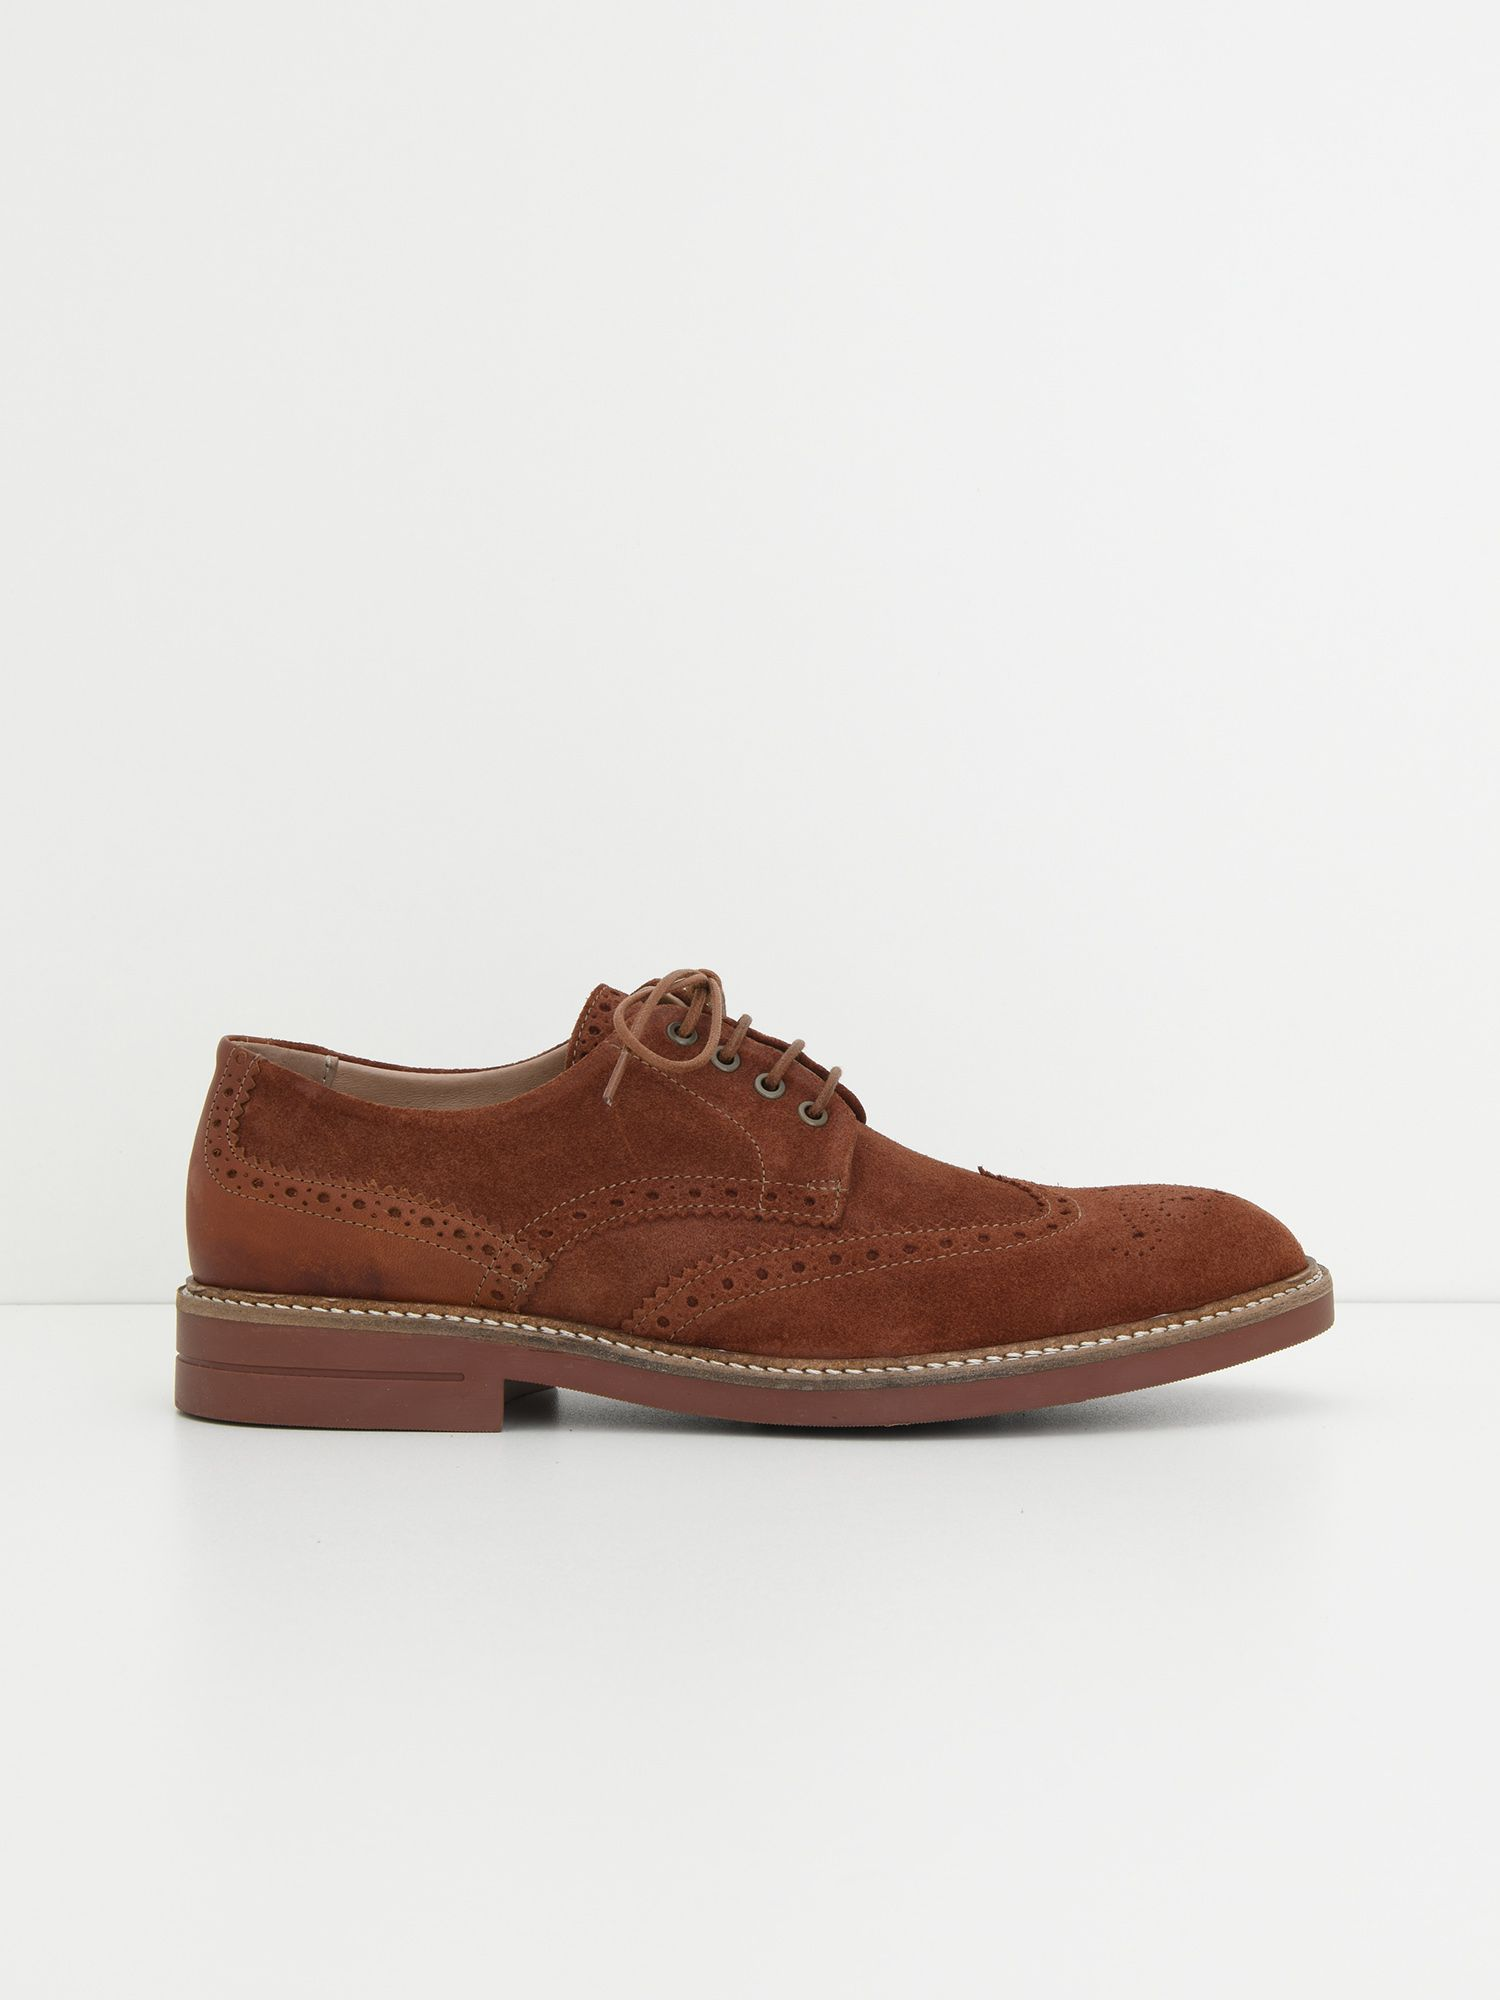 schmoove.fr Crew Perfo - Suede - Terracotta